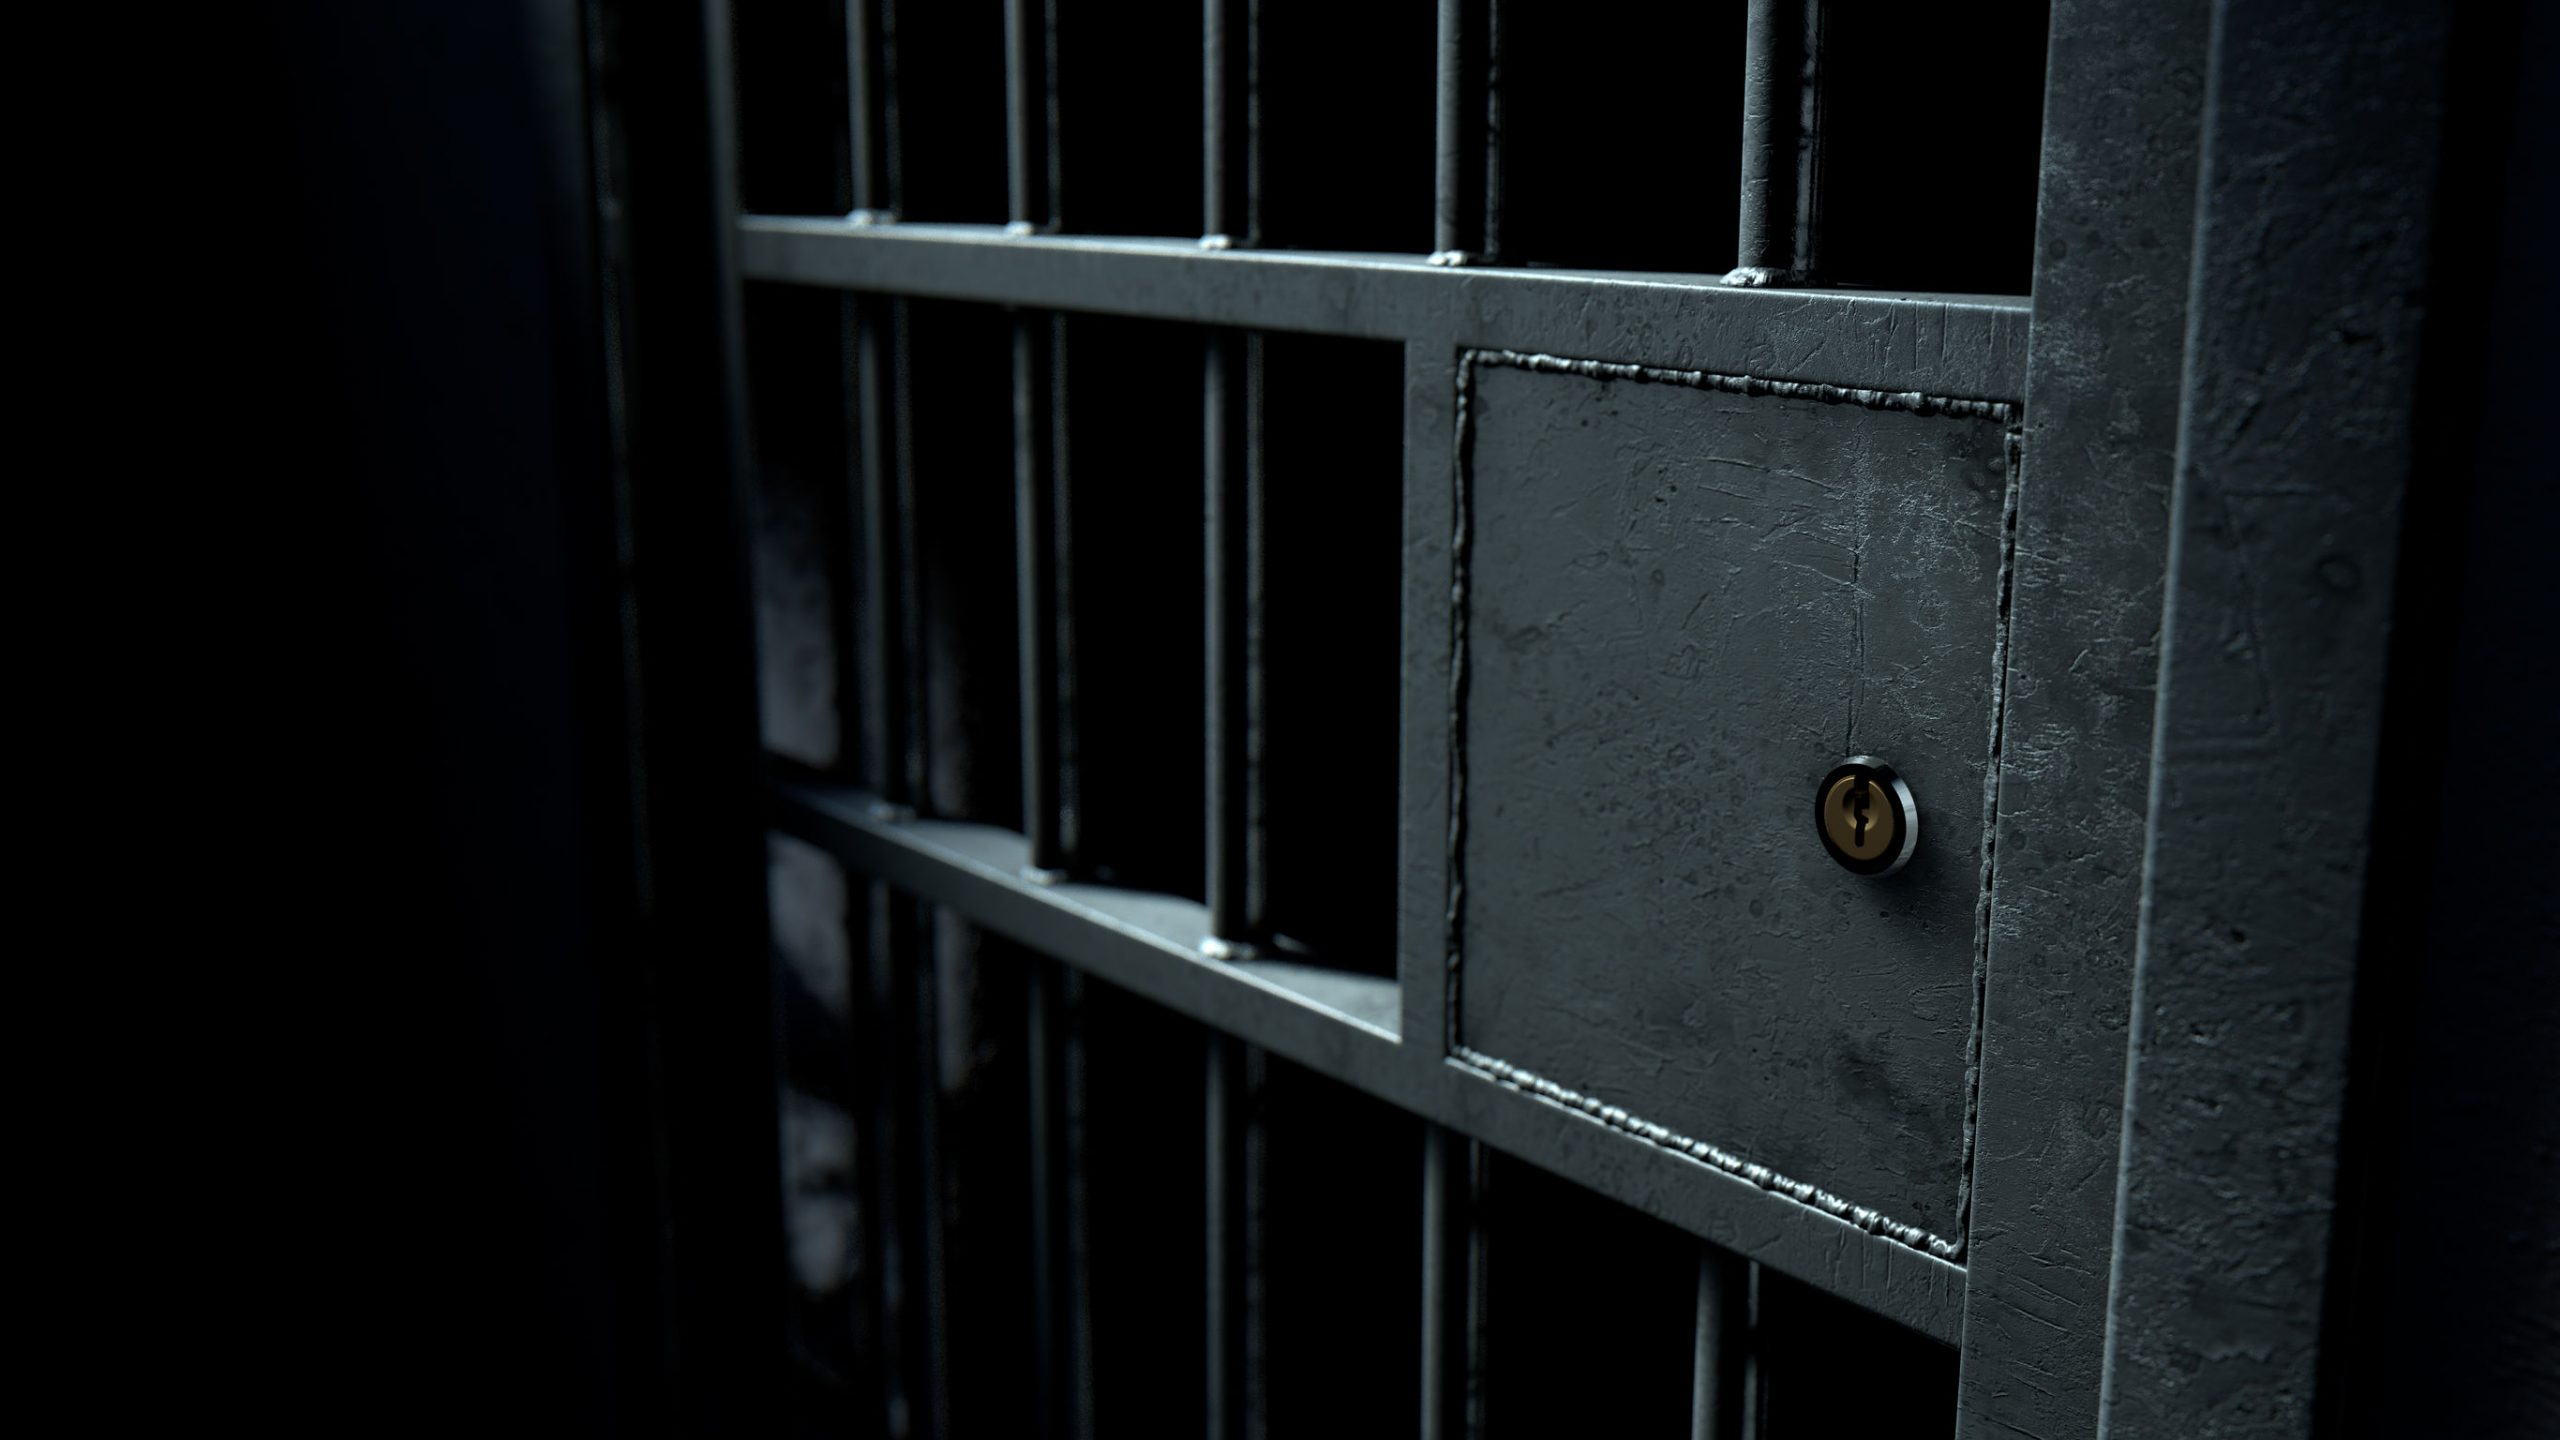 A closeup of the locking mechanism of a closed jail cell with welded iron bars on a dimly lit dark background - 3D render